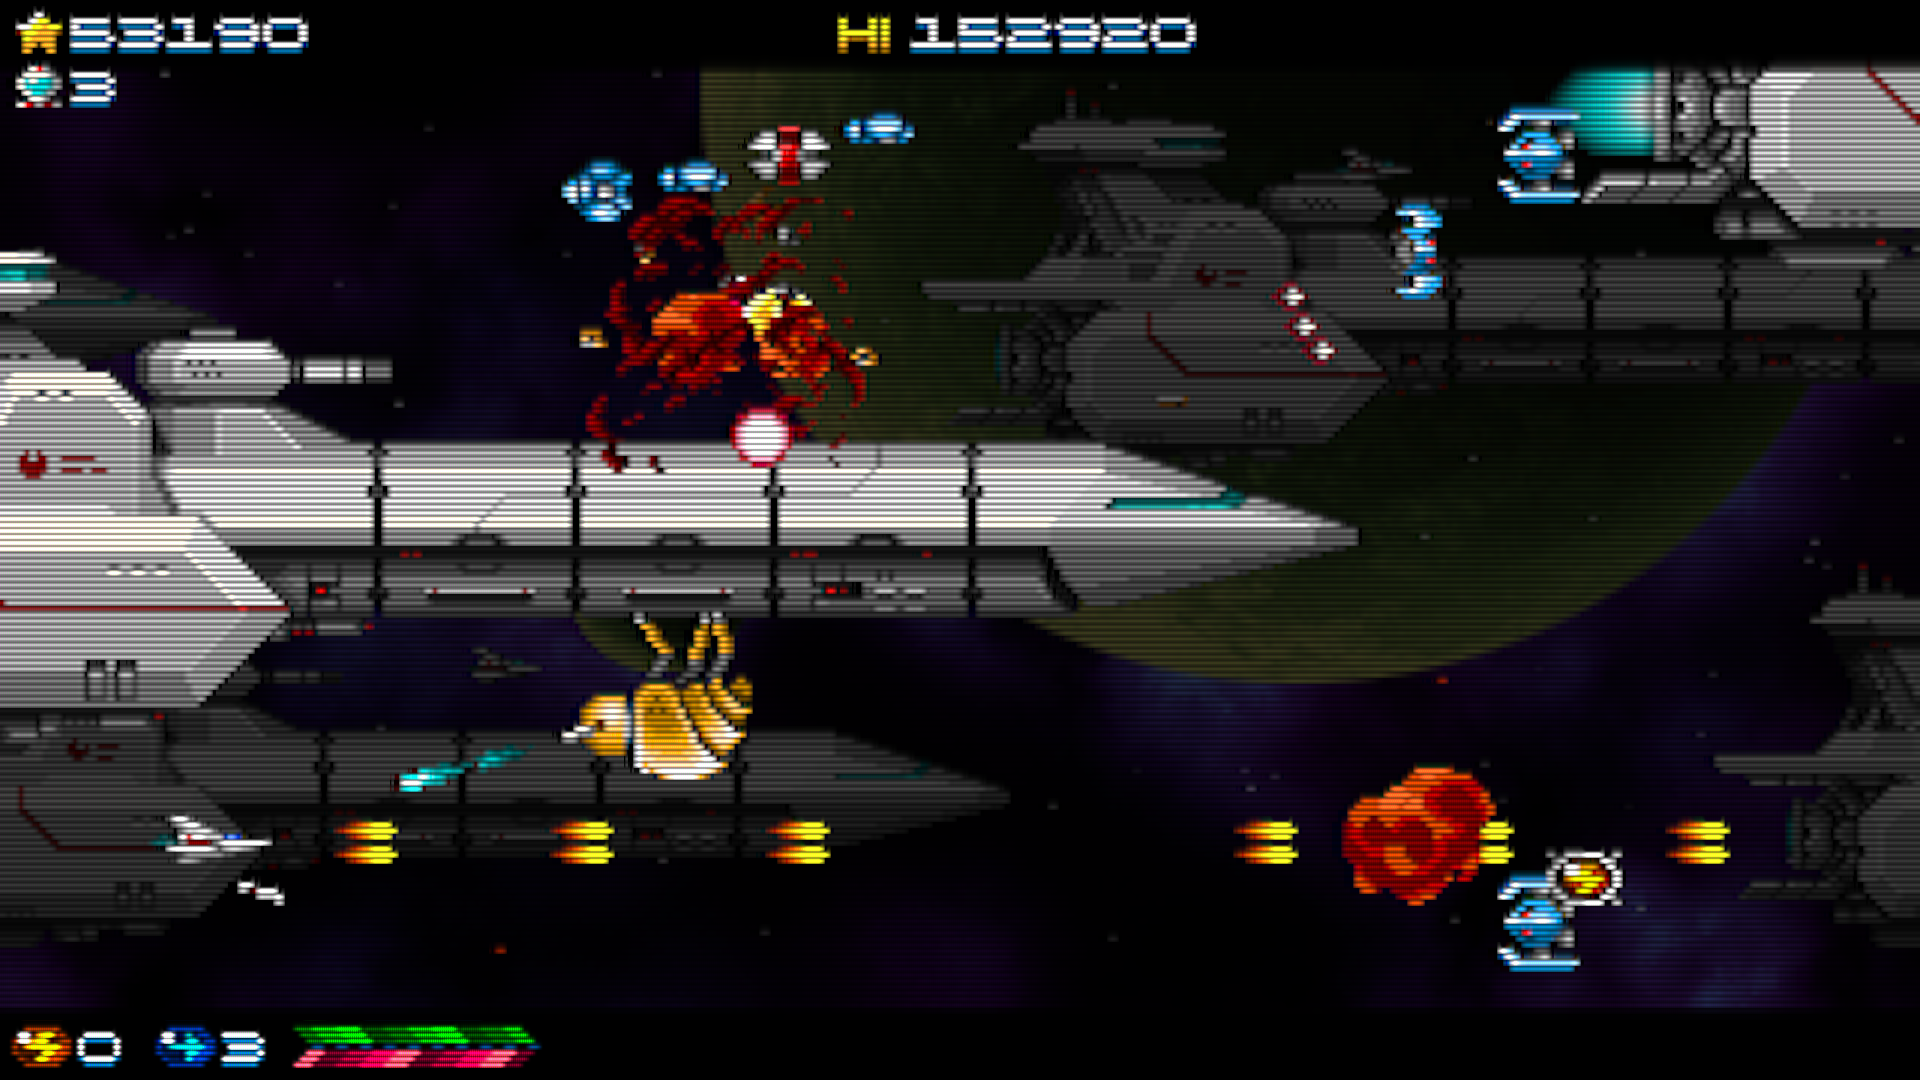 Super Hydorah screenshot, dodging and destroying the enemies